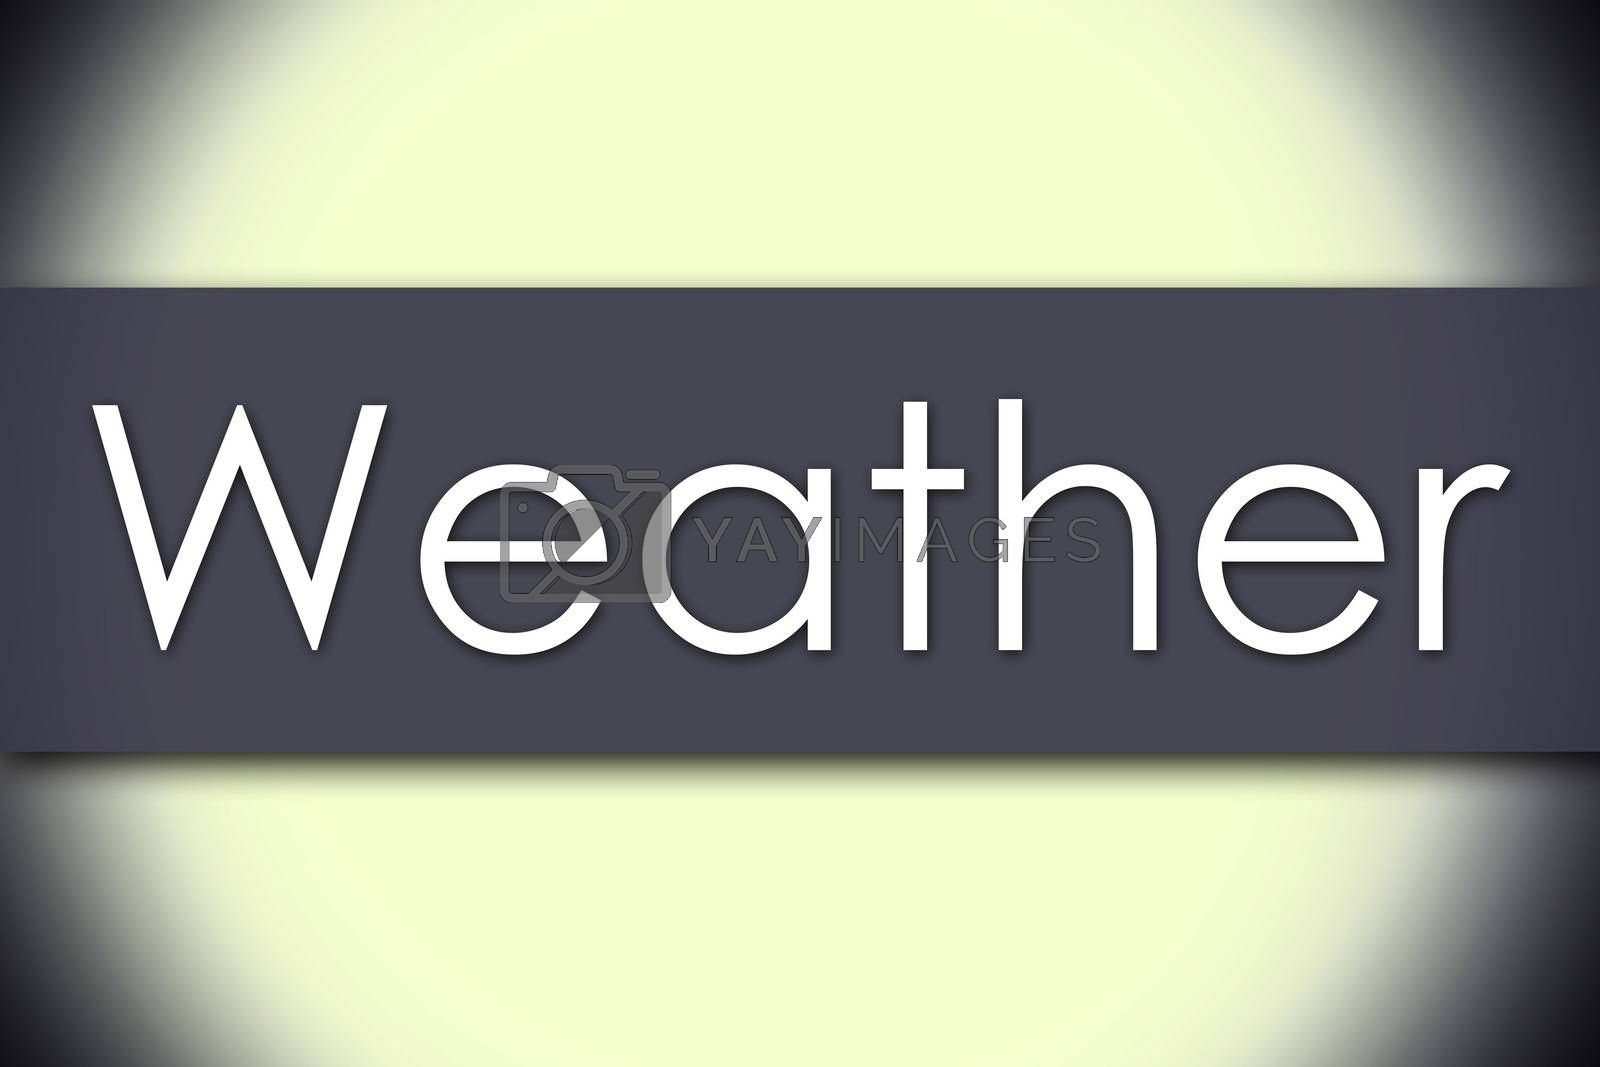 Weather - business concept with text - horizontal image